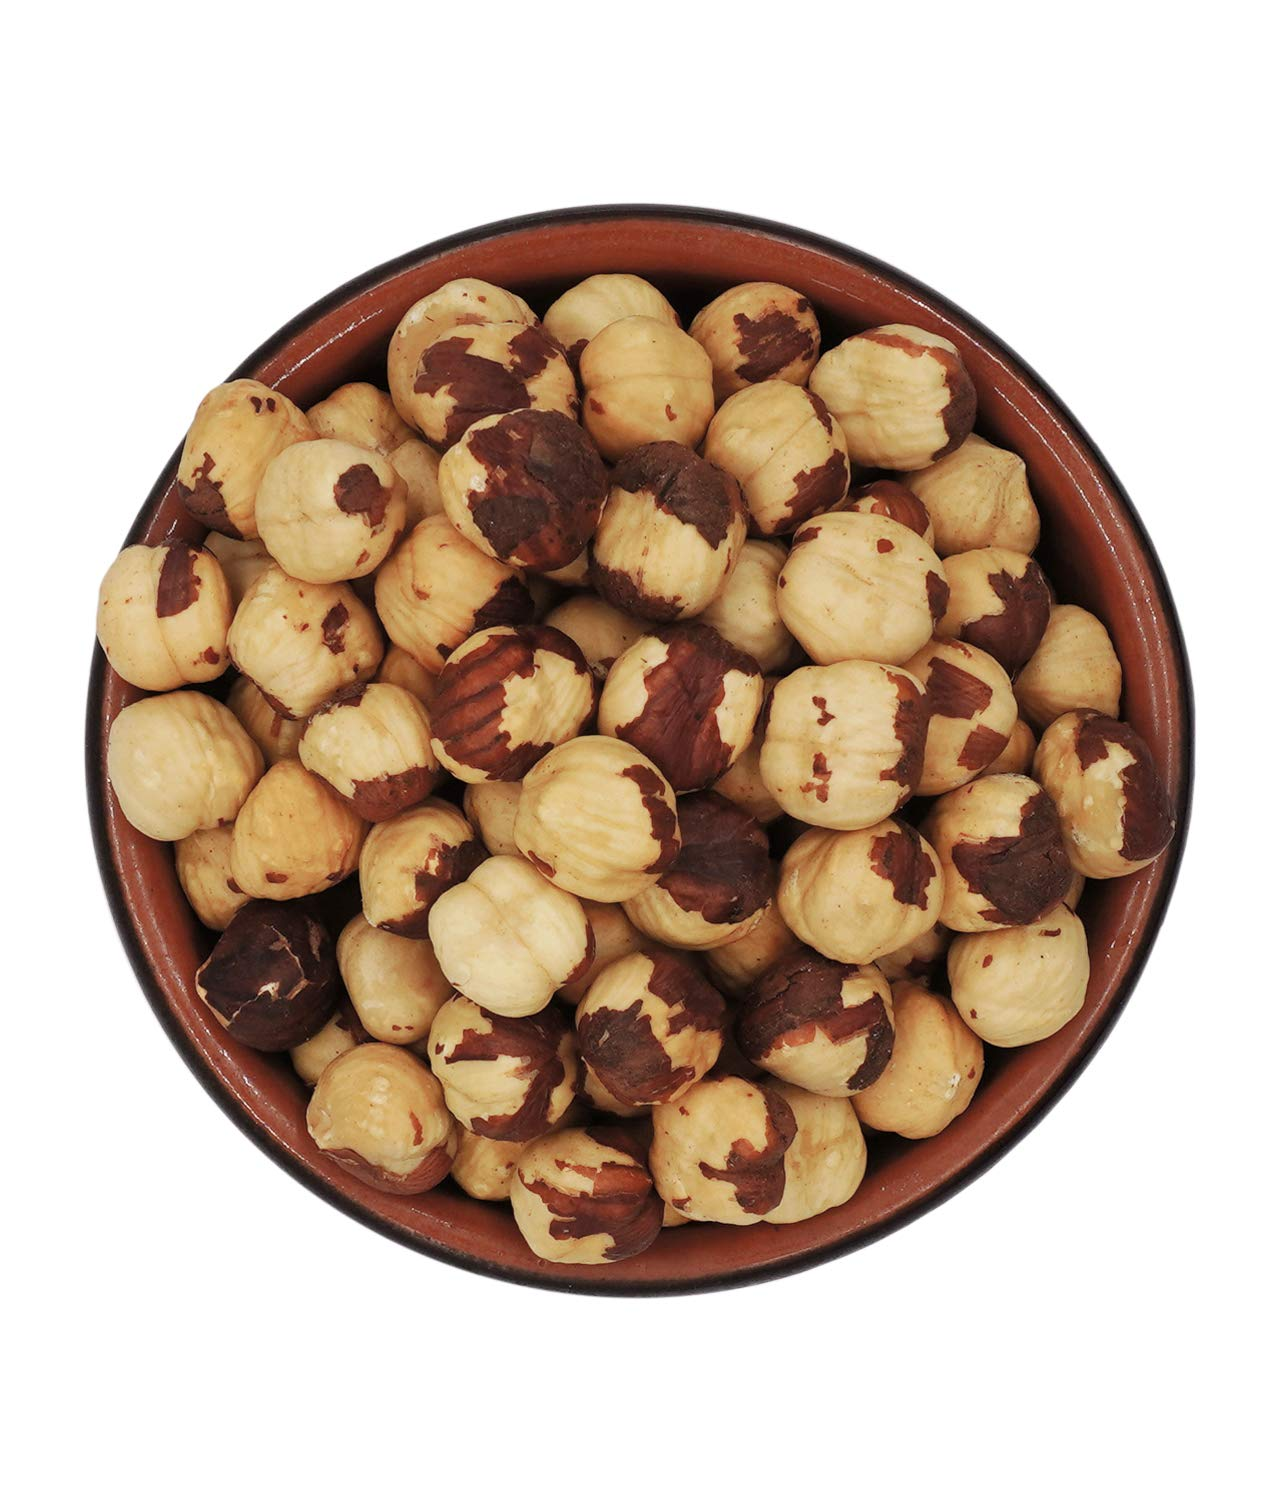 Roasted Unsalted Austin Mall Turkish Hazelnuts ready eat bag resealable Special price for a limited time to